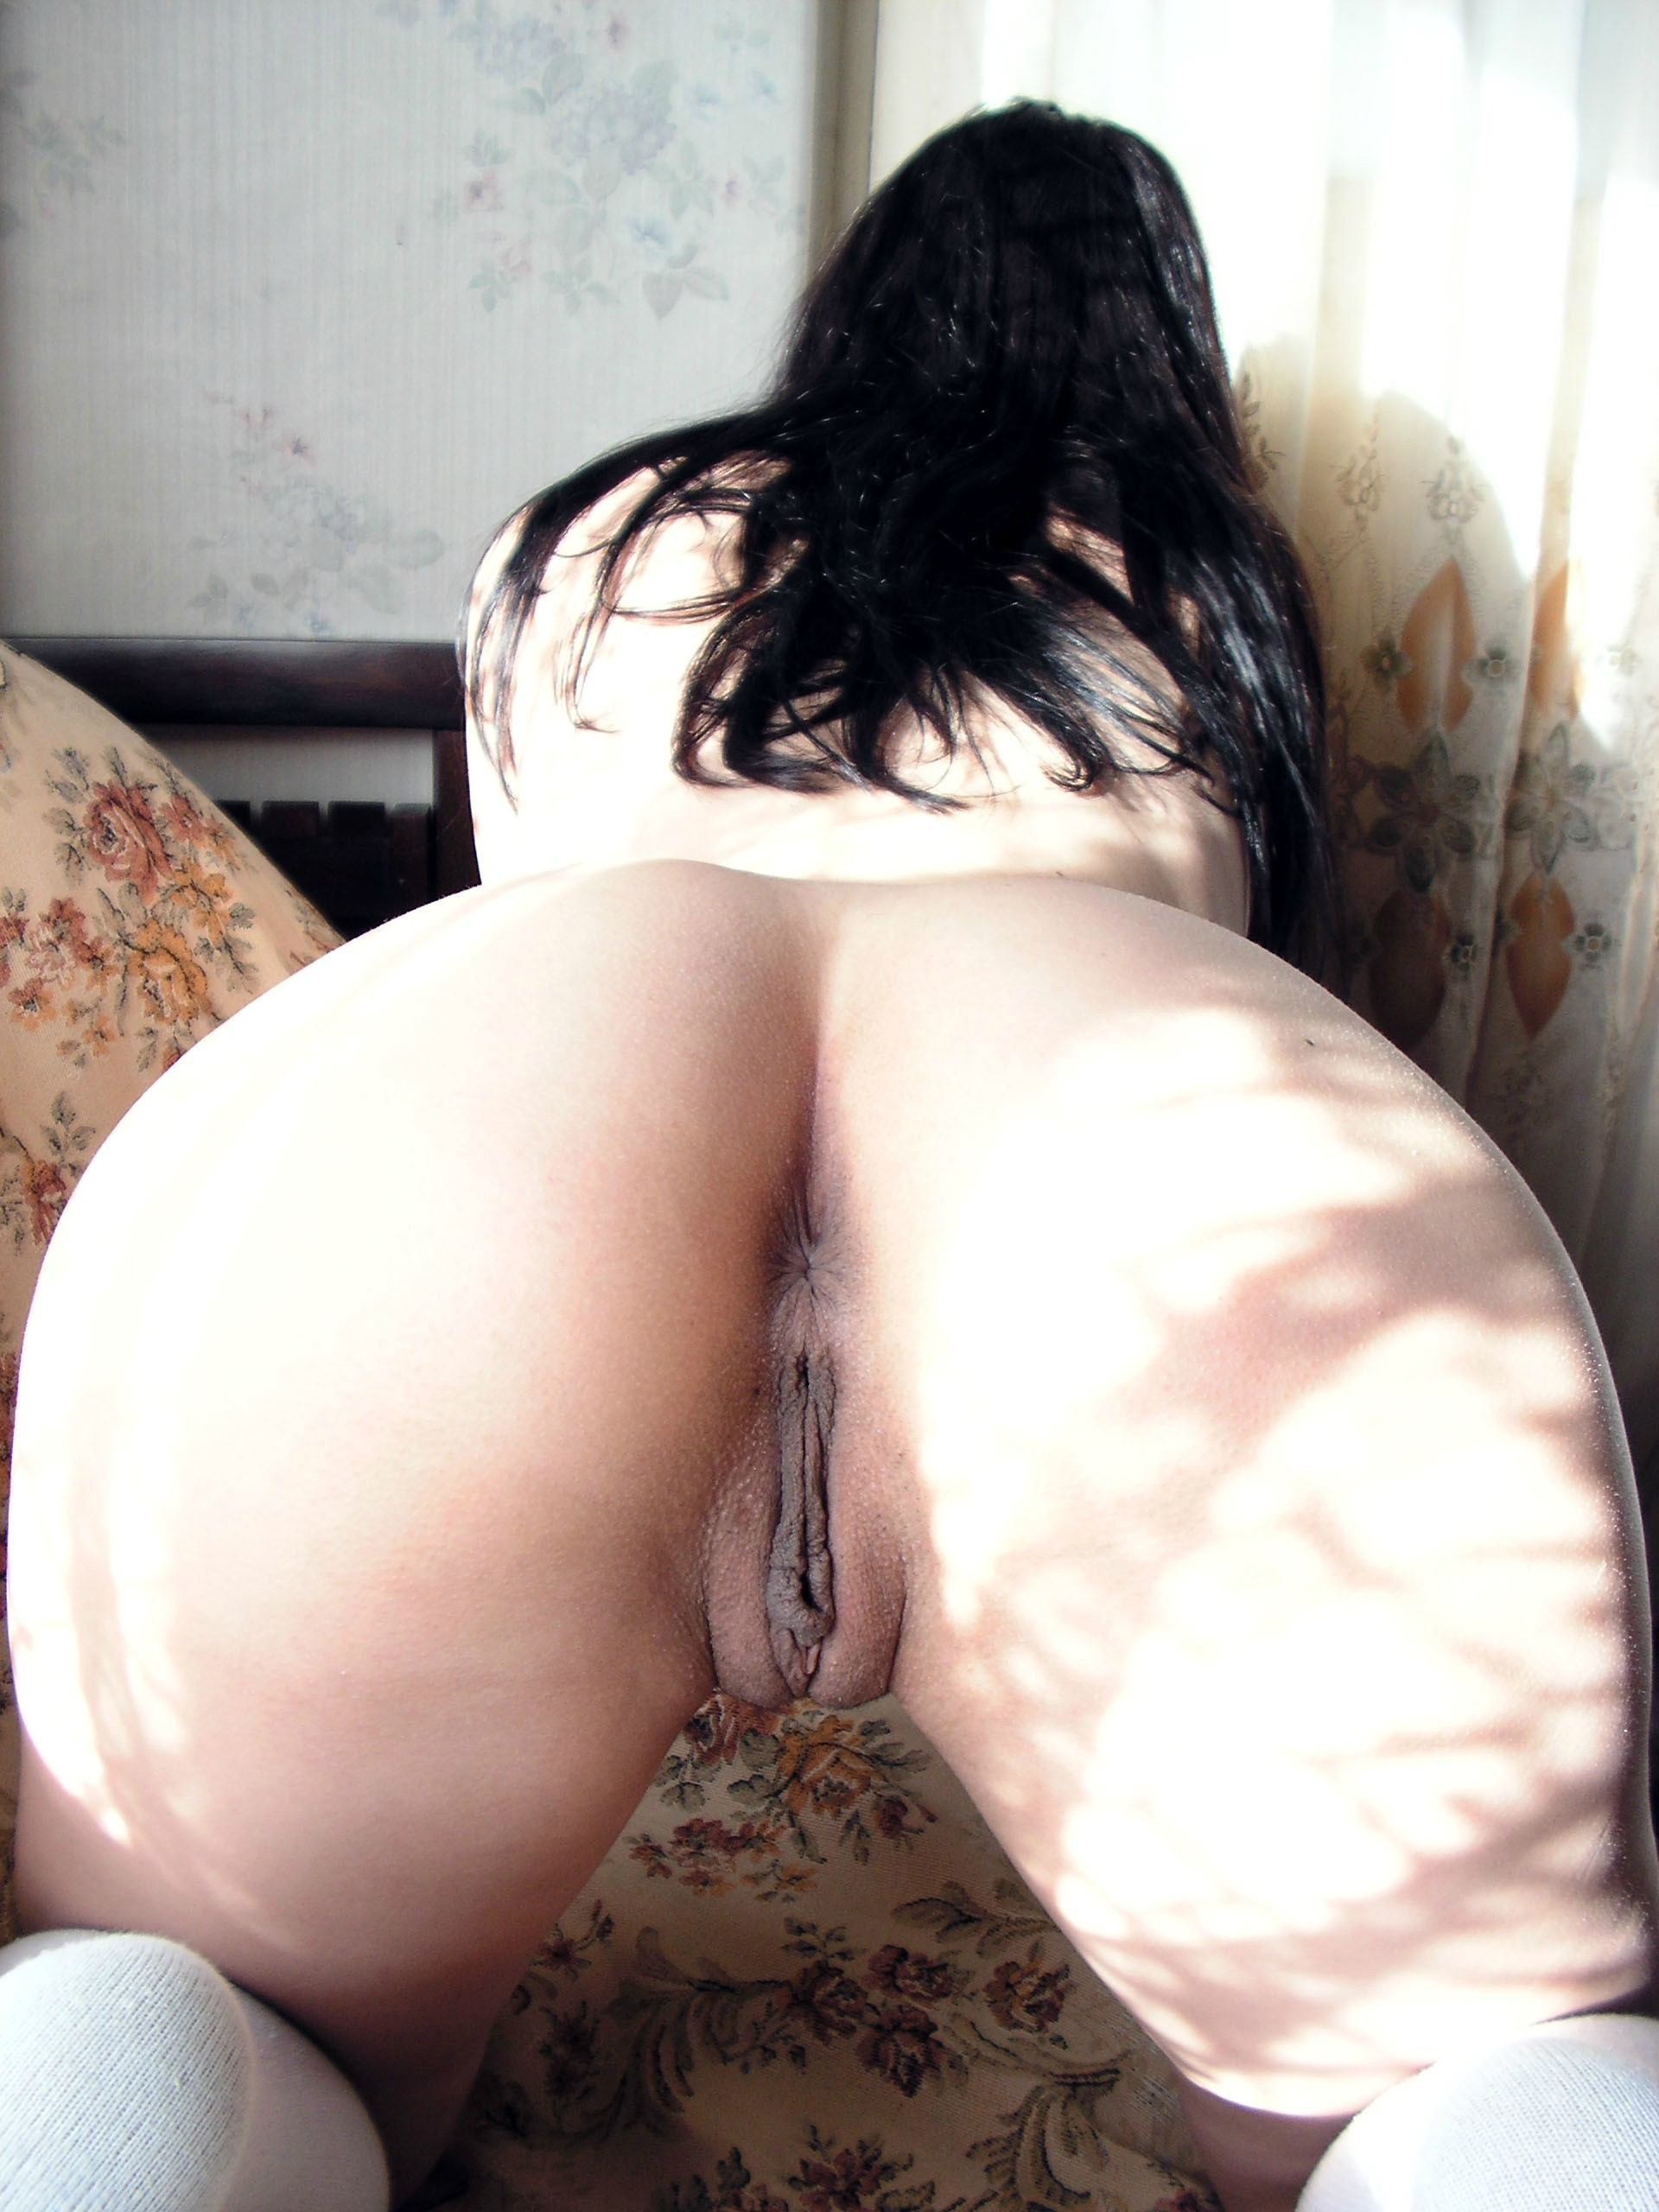 redhead fucking and squirting when she cums